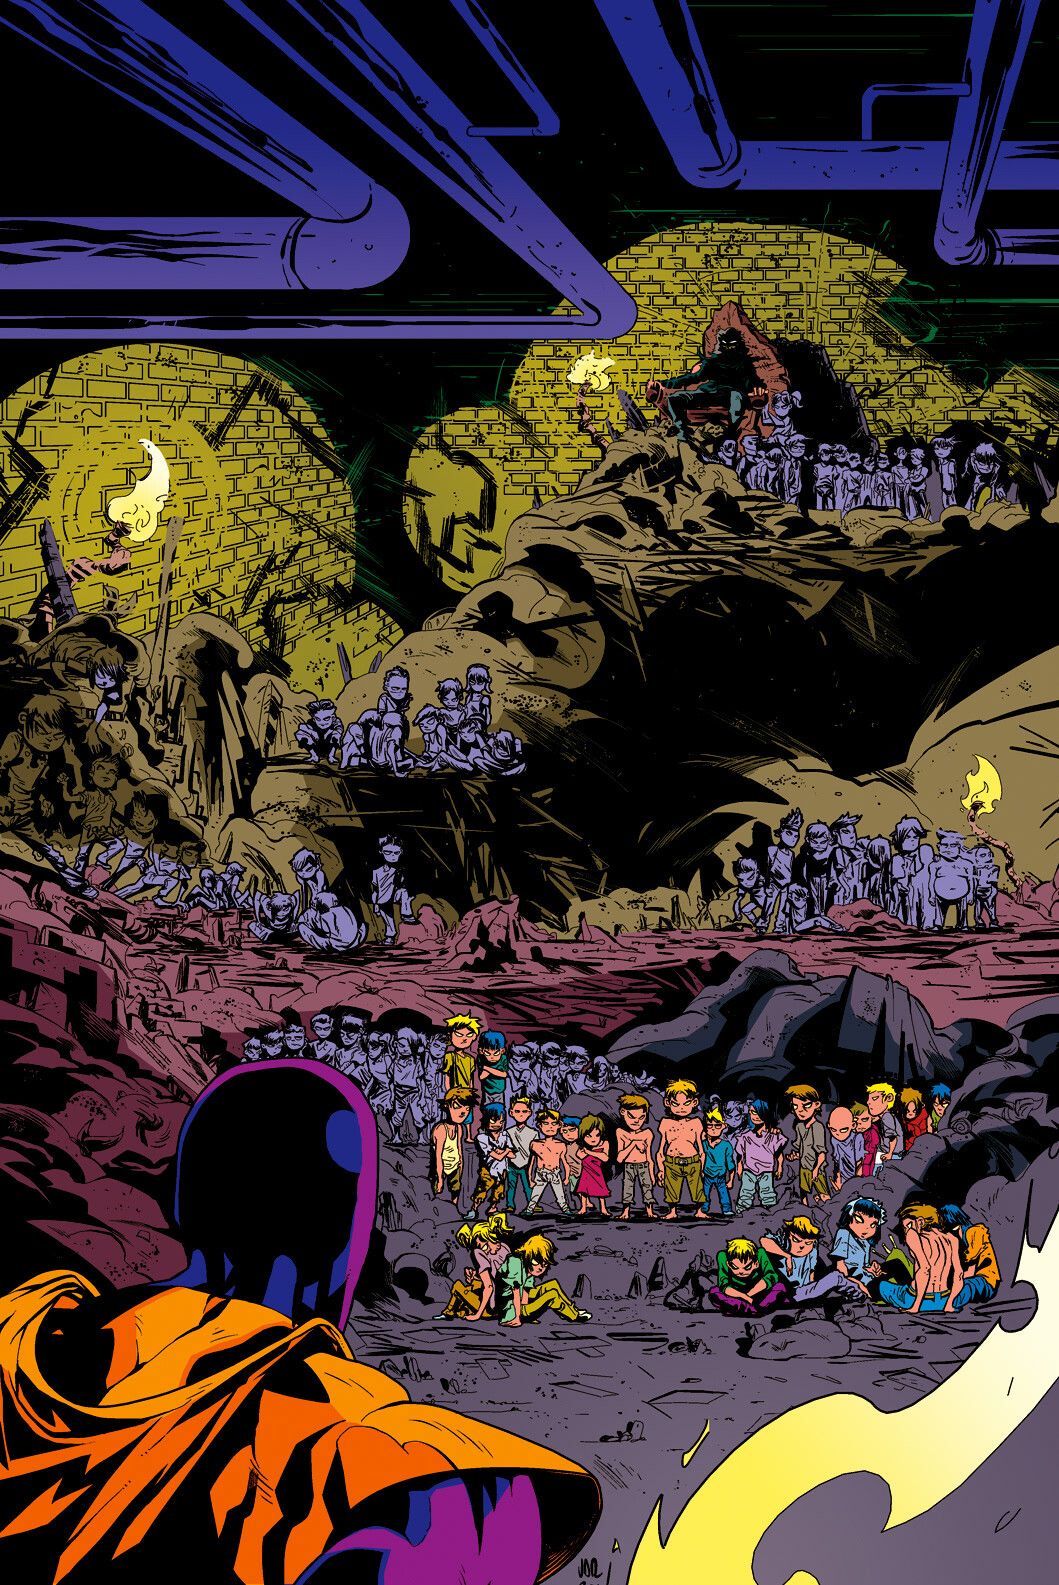 Colouring for ComiXtribe/The Standard. Story by John Lees, Art by Will Robson and Jonathan Rector.